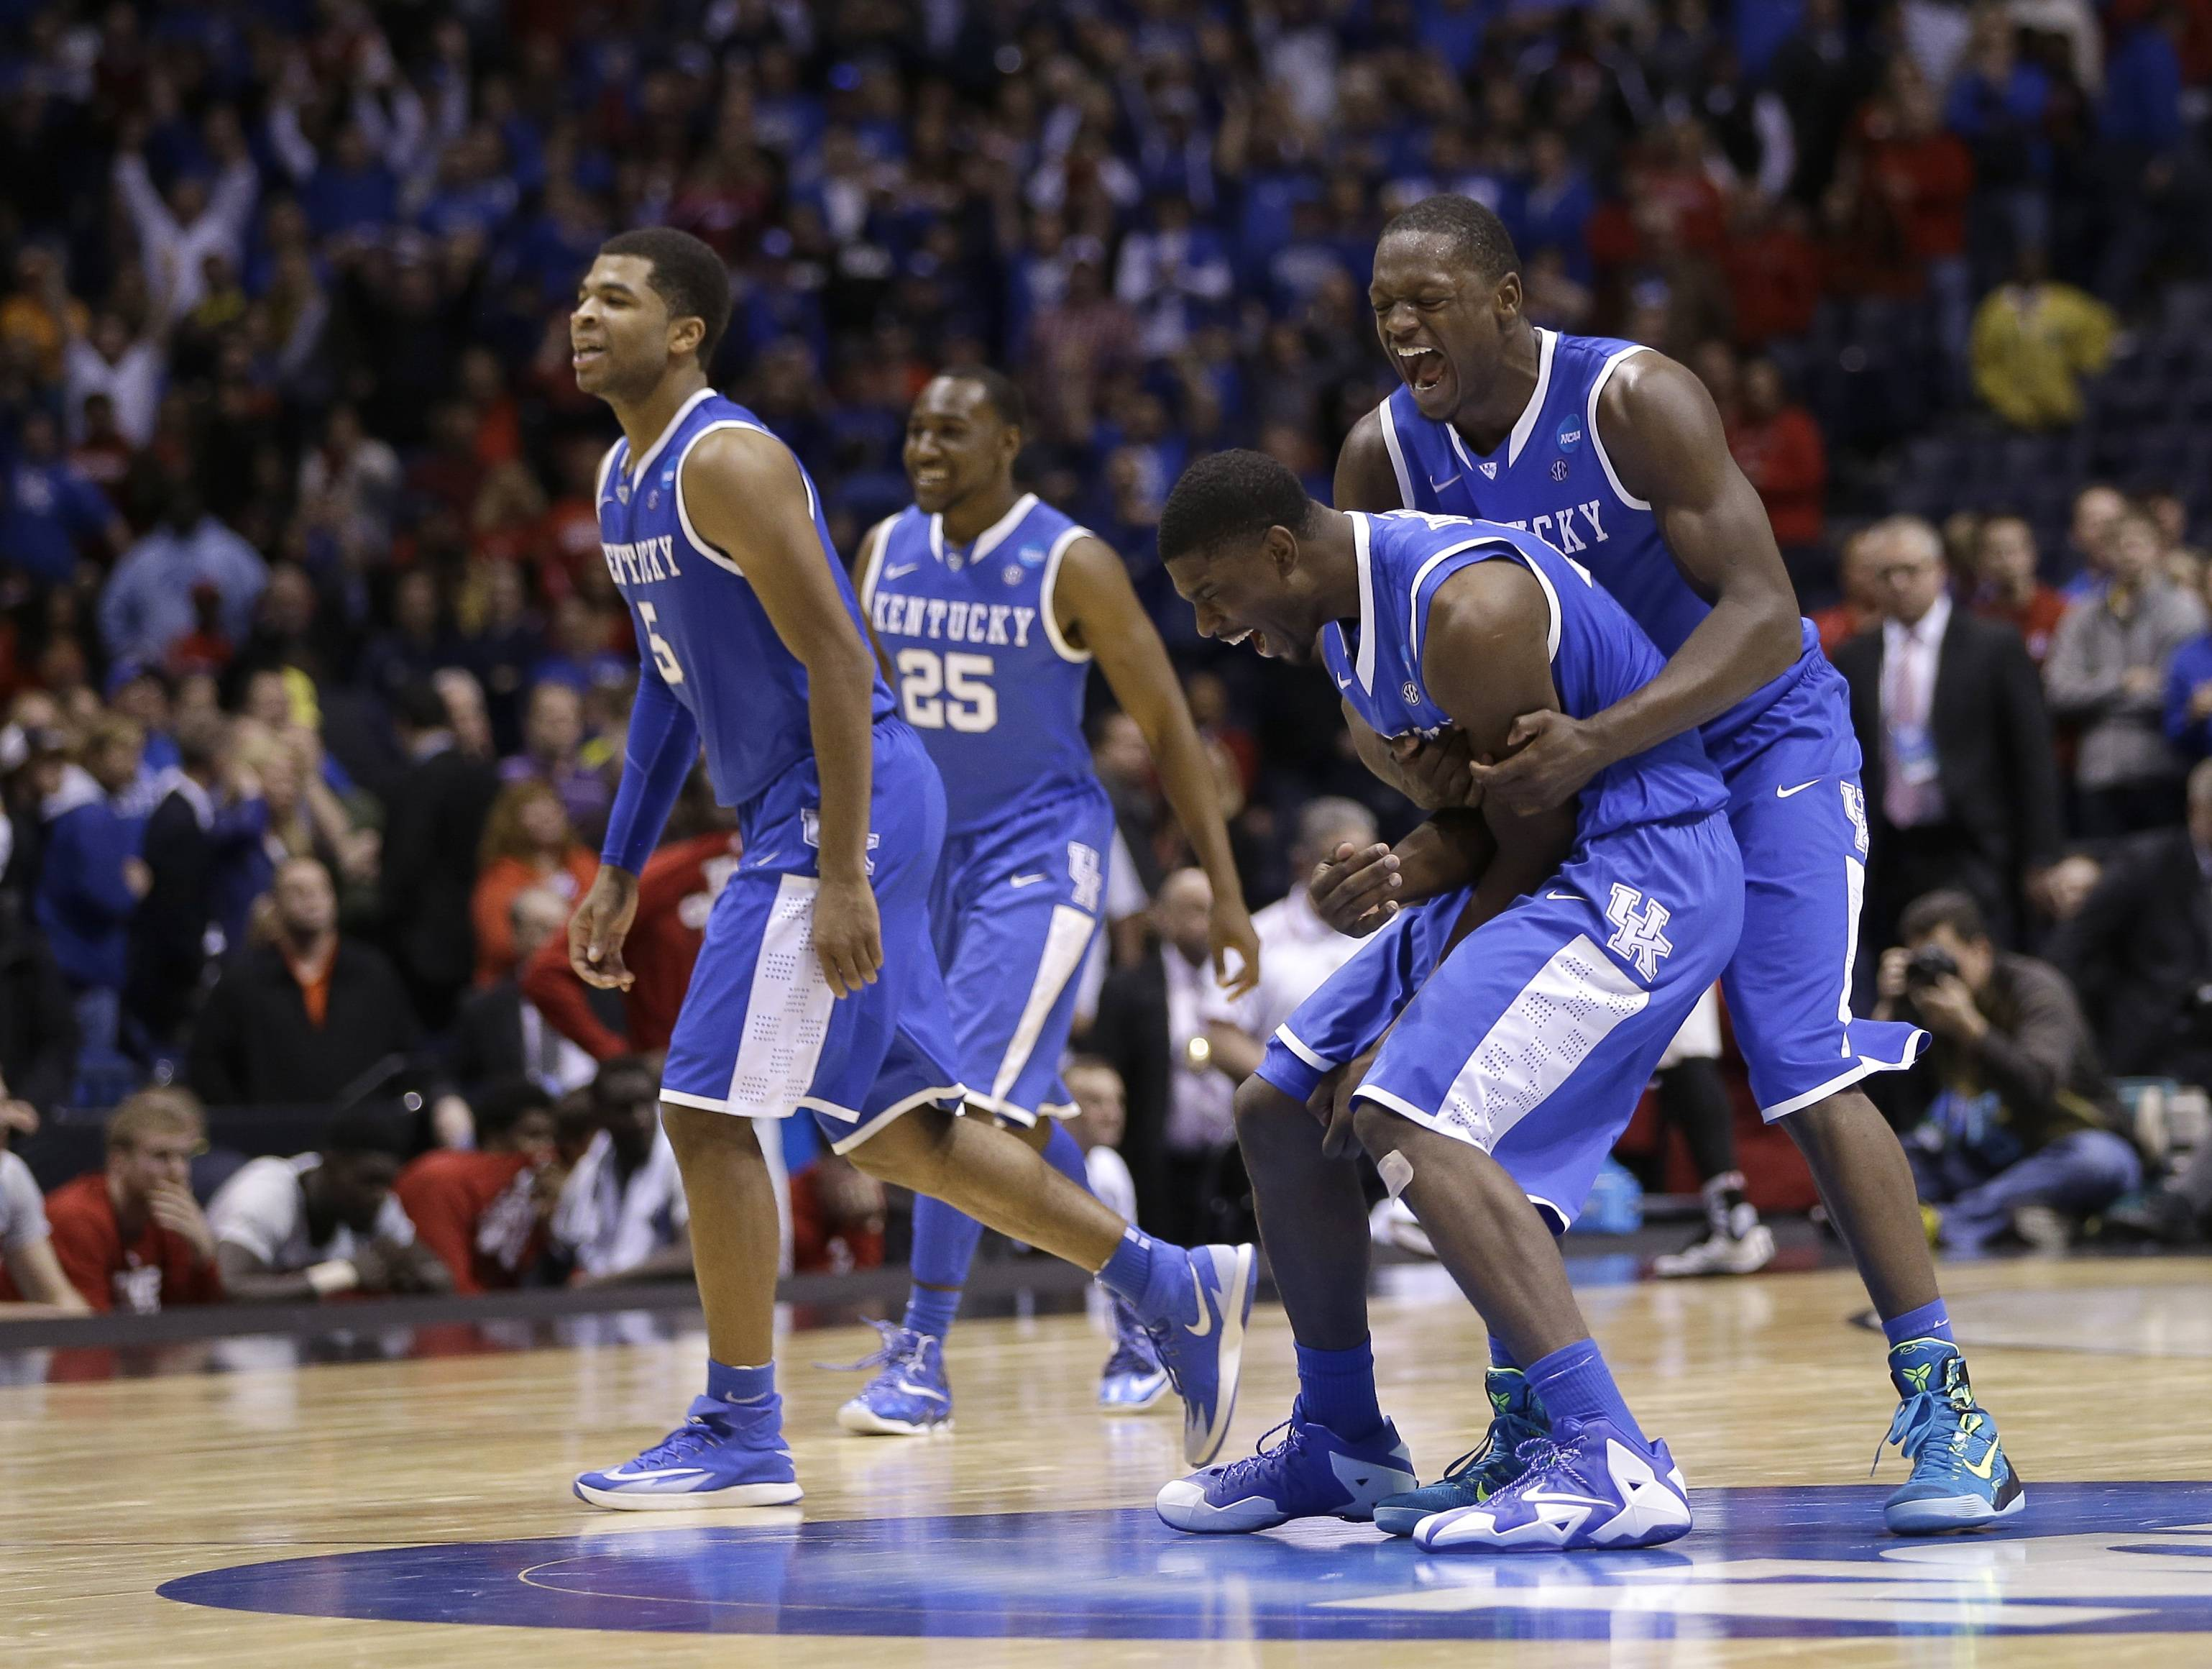 Kentucky's Alex Poythress and Aaron Harrison, right, celebrate after they beat Louisville Saturday in Indianapolis, 74-69.